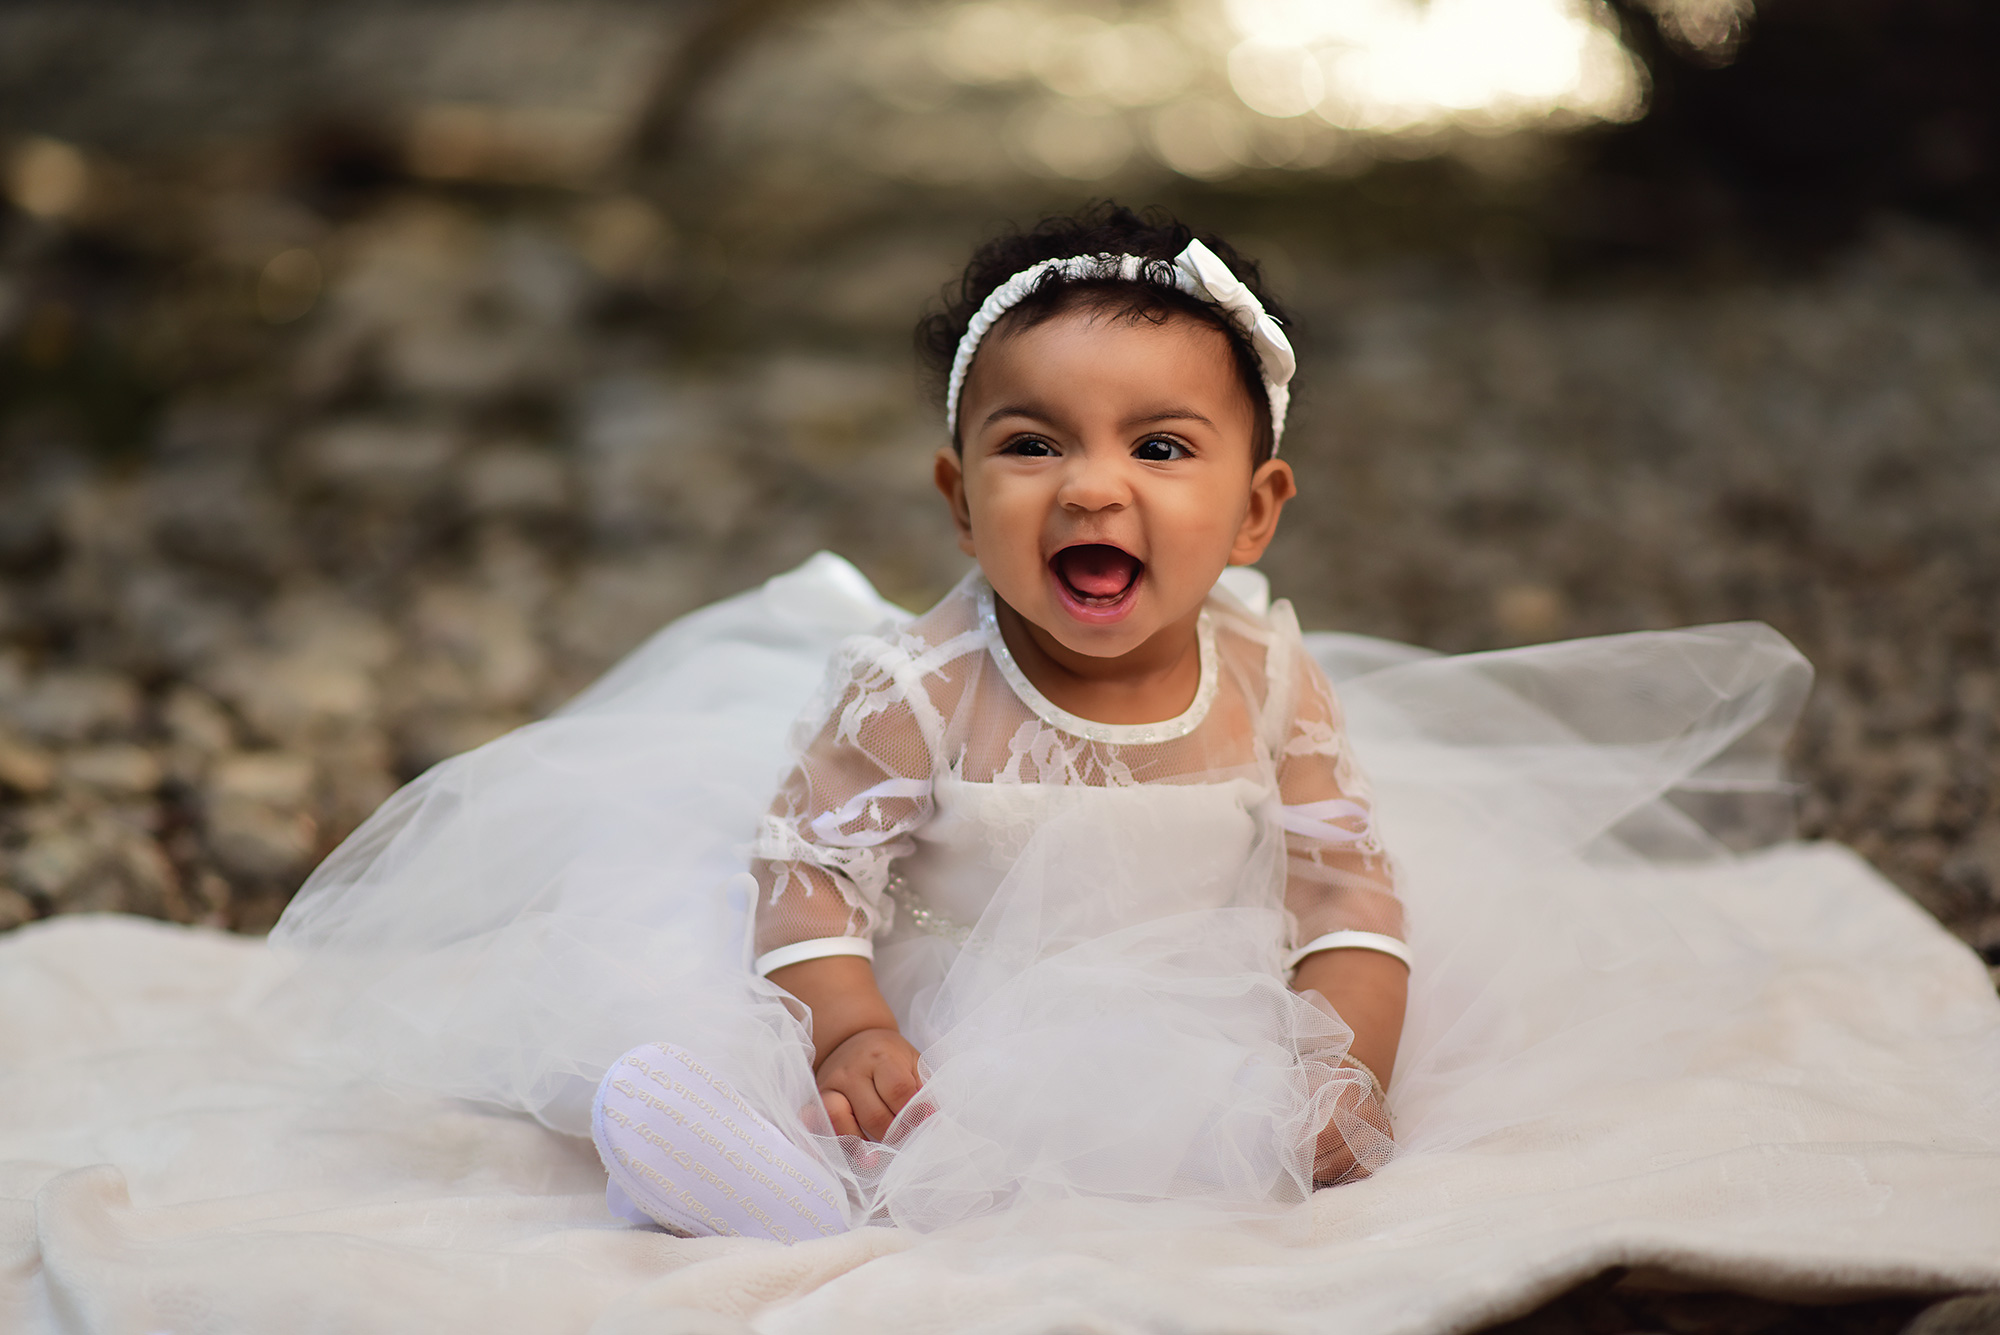 https://bworthyphotography.smugmug.com/BW-Website-Family-Session/Khaleesi-Pre-Baptism-Photos